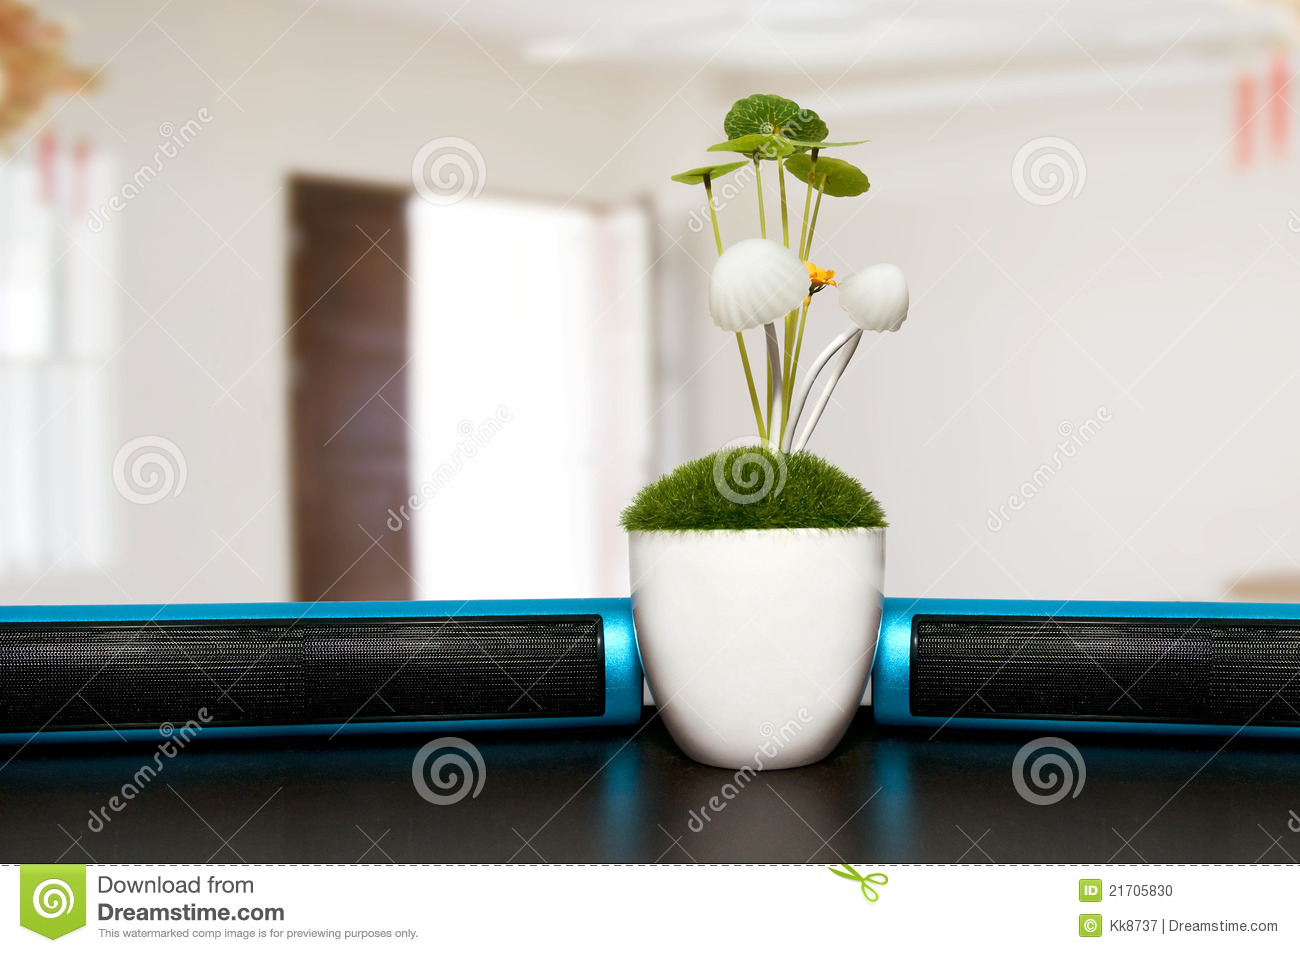 plants on office desk stock photo - image: 21705830